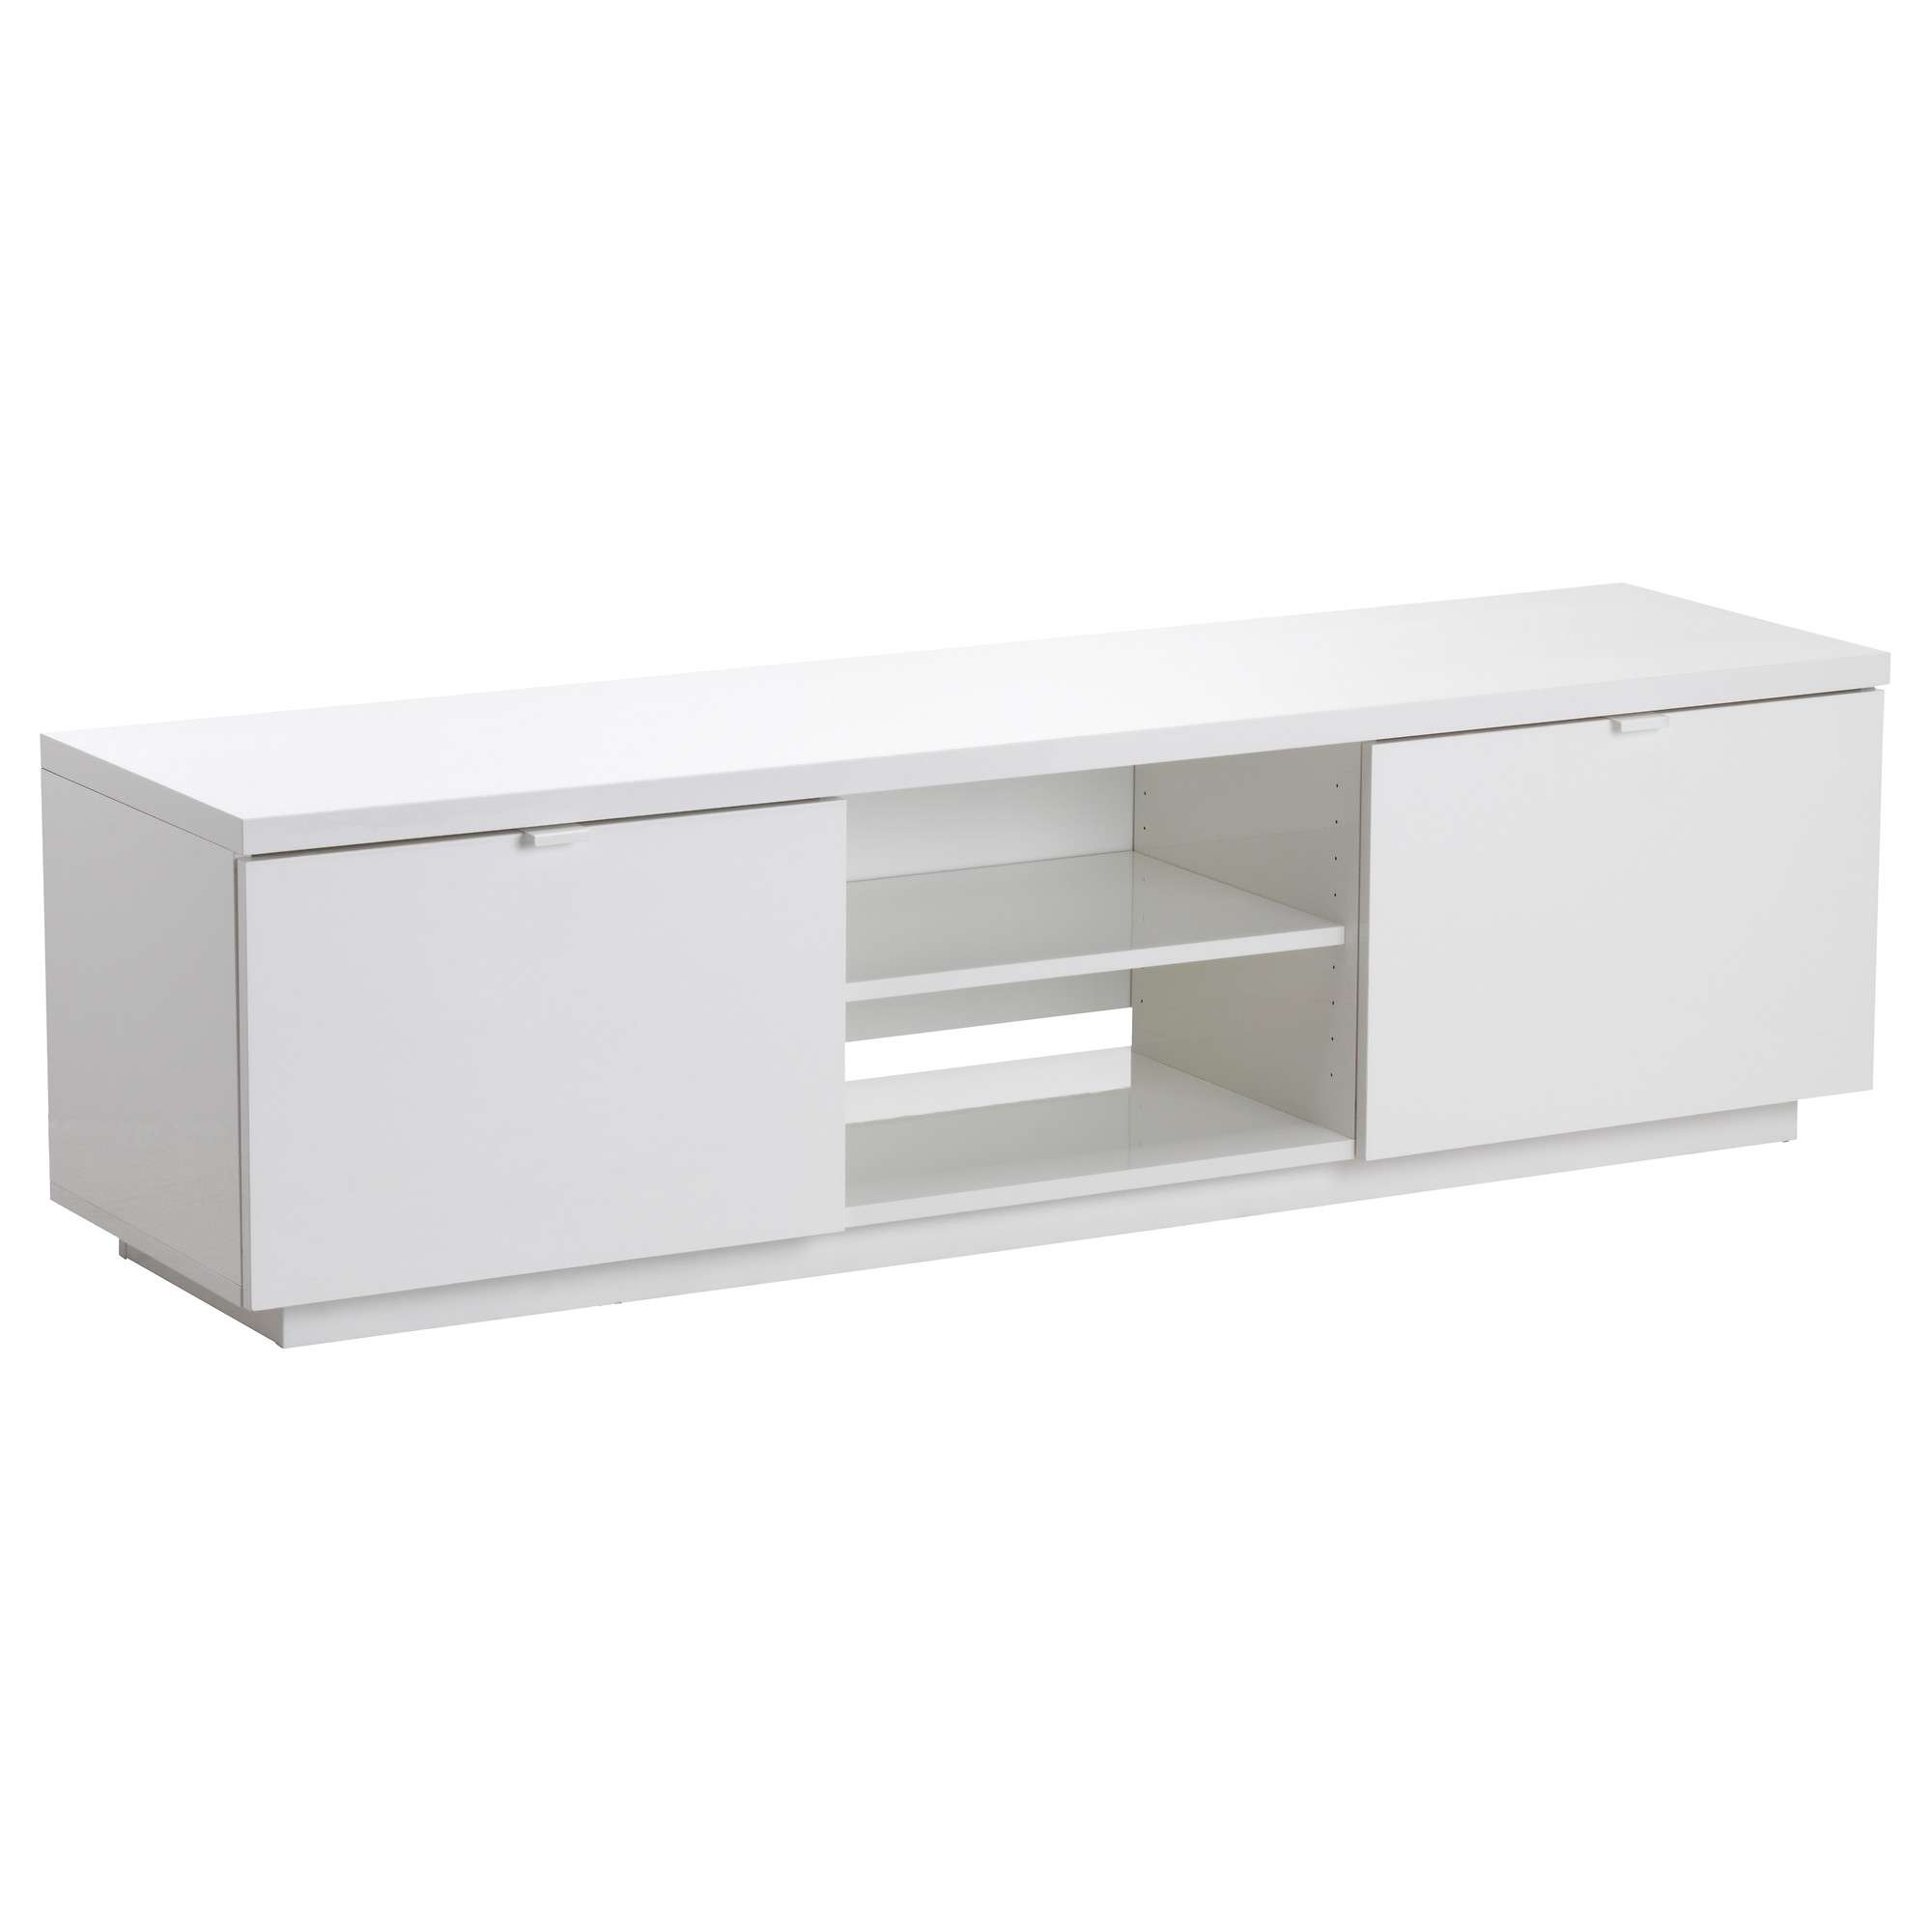 Byås Tv Bench High Gloss White 160X42X45 Cm – Ikea With White Gloss Ikea Sideboards (View 10 of 20)